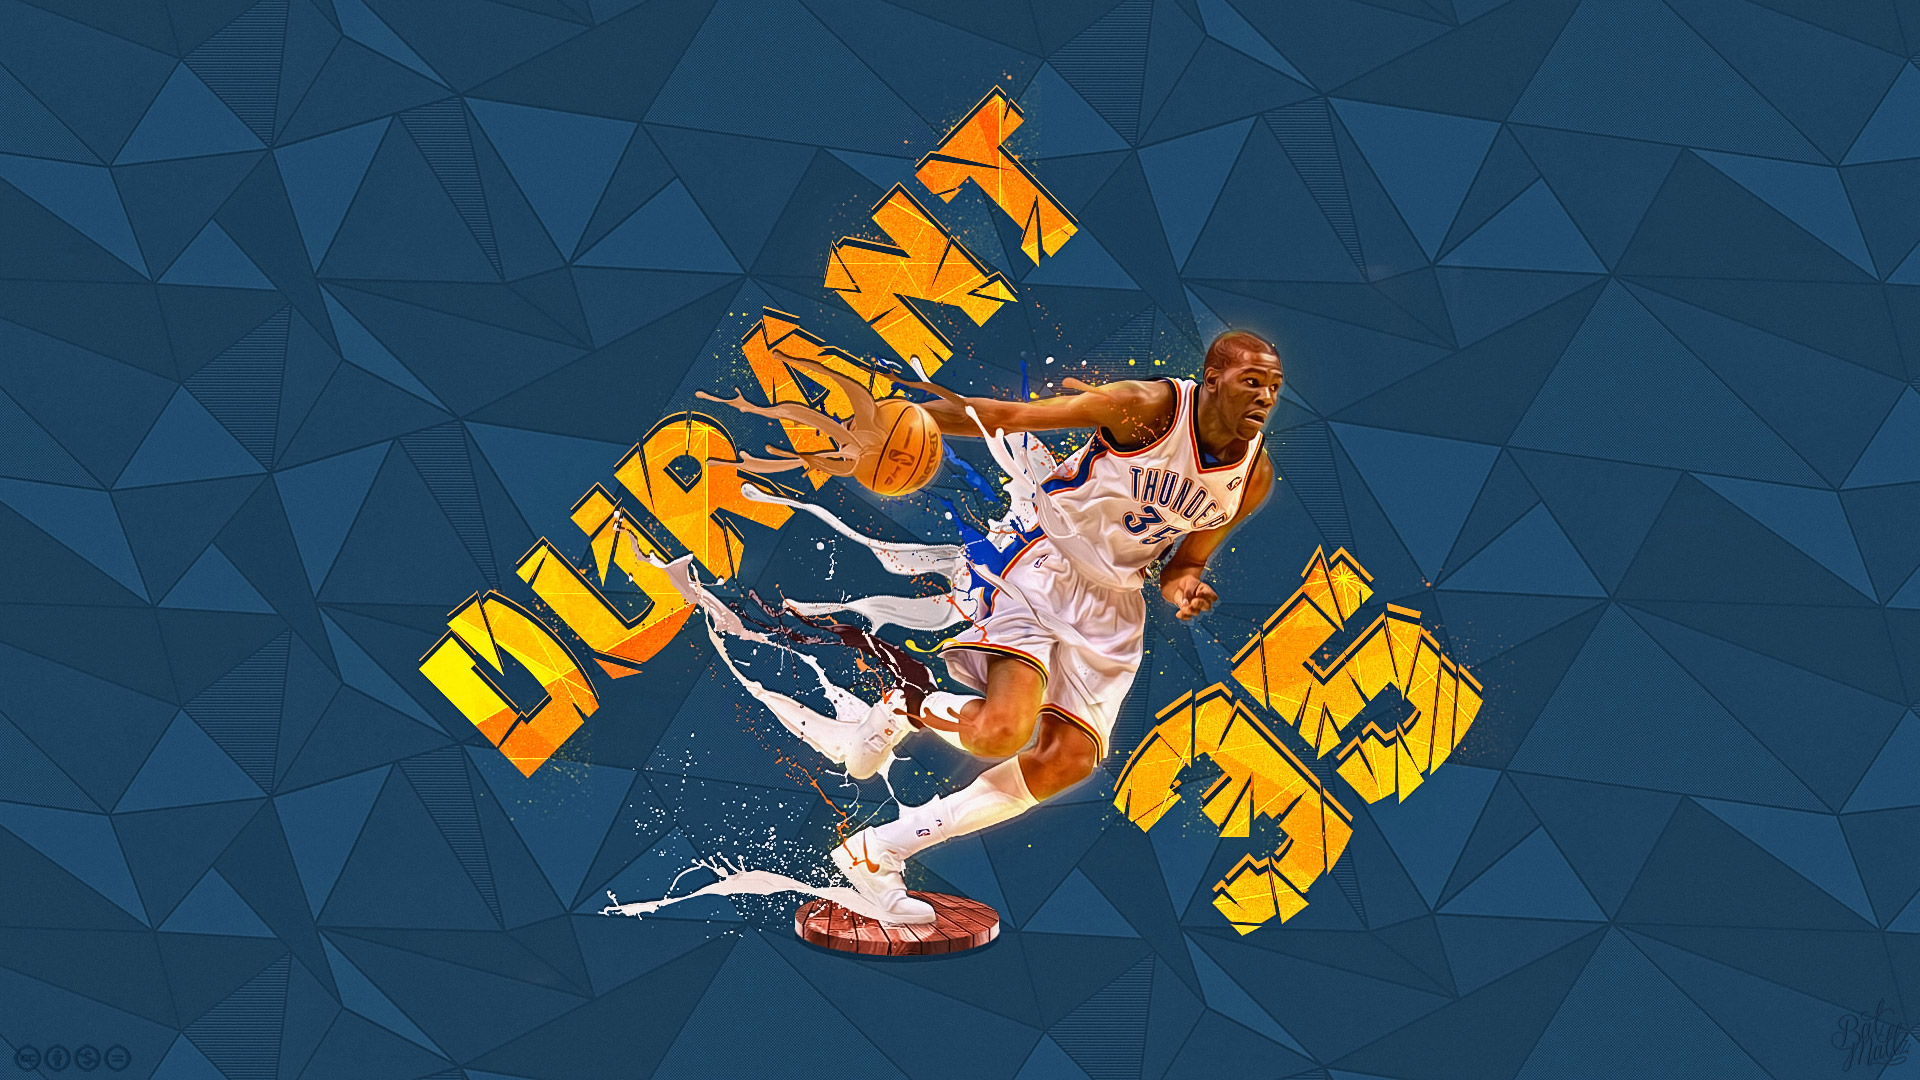 Kevin Durant Hd Wallpaper Background Image 1920x1080